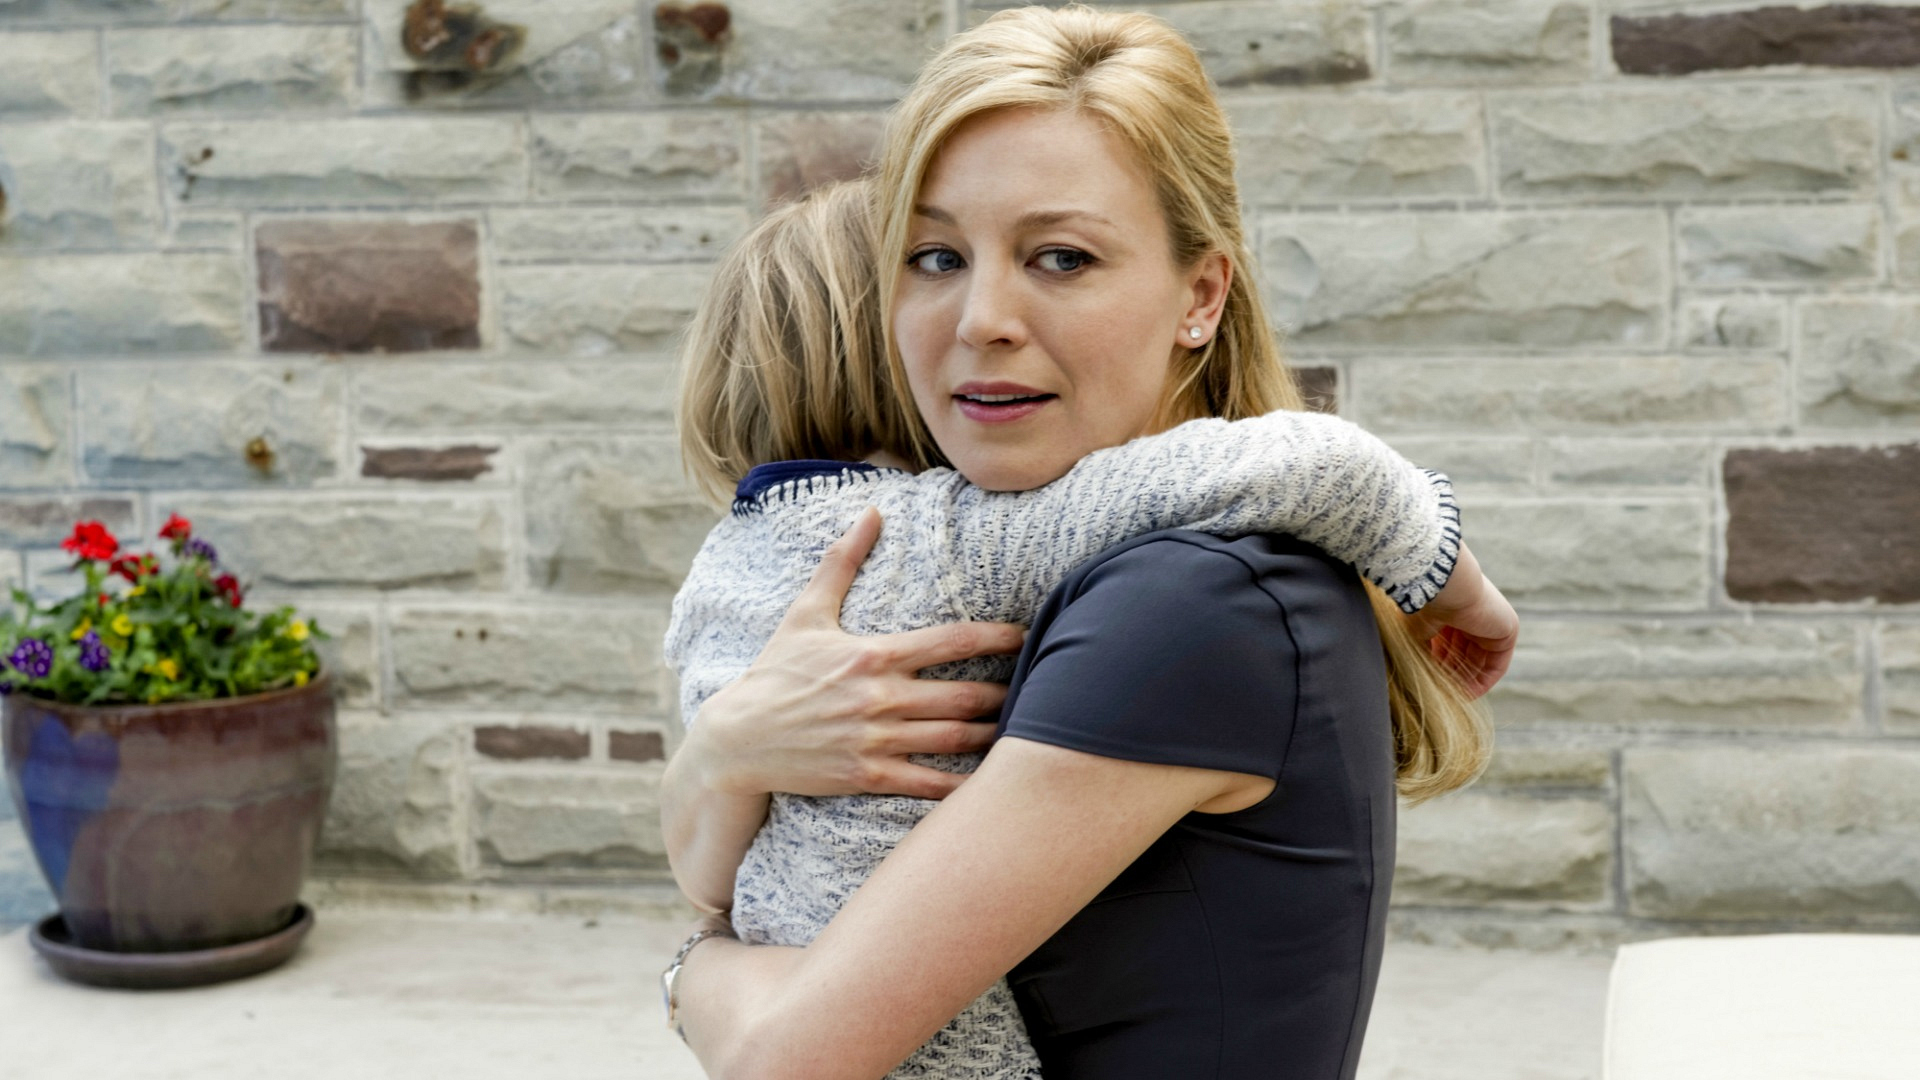 Alison hugs her daughter.